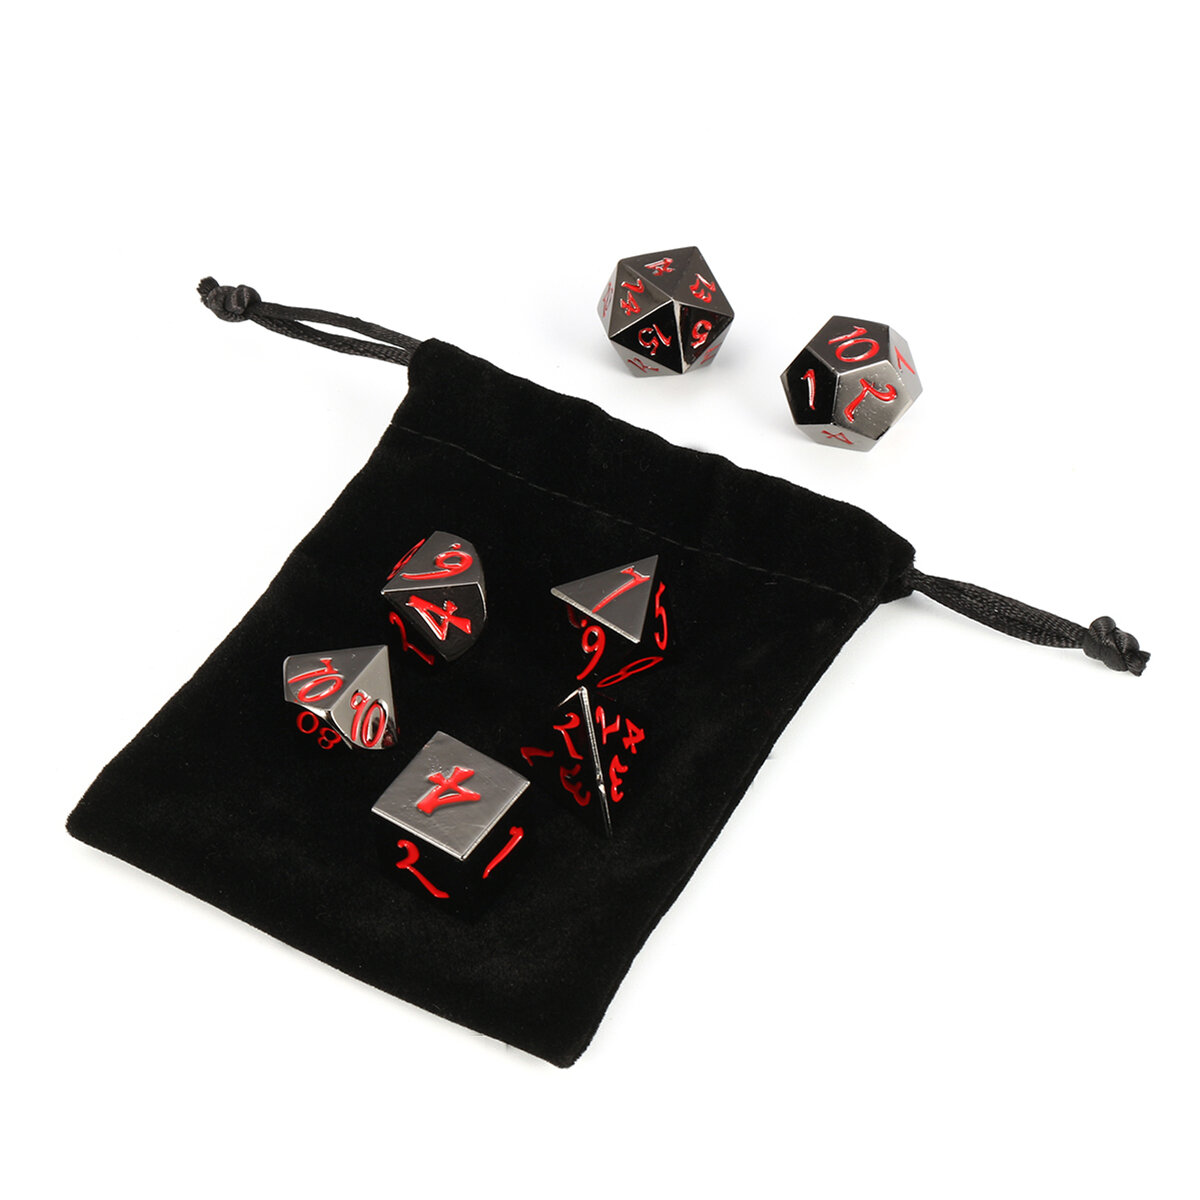 7Pcs Antique Metal Polyhedral Dices Multisided Dices Set Role Playing Game Dice With Bag